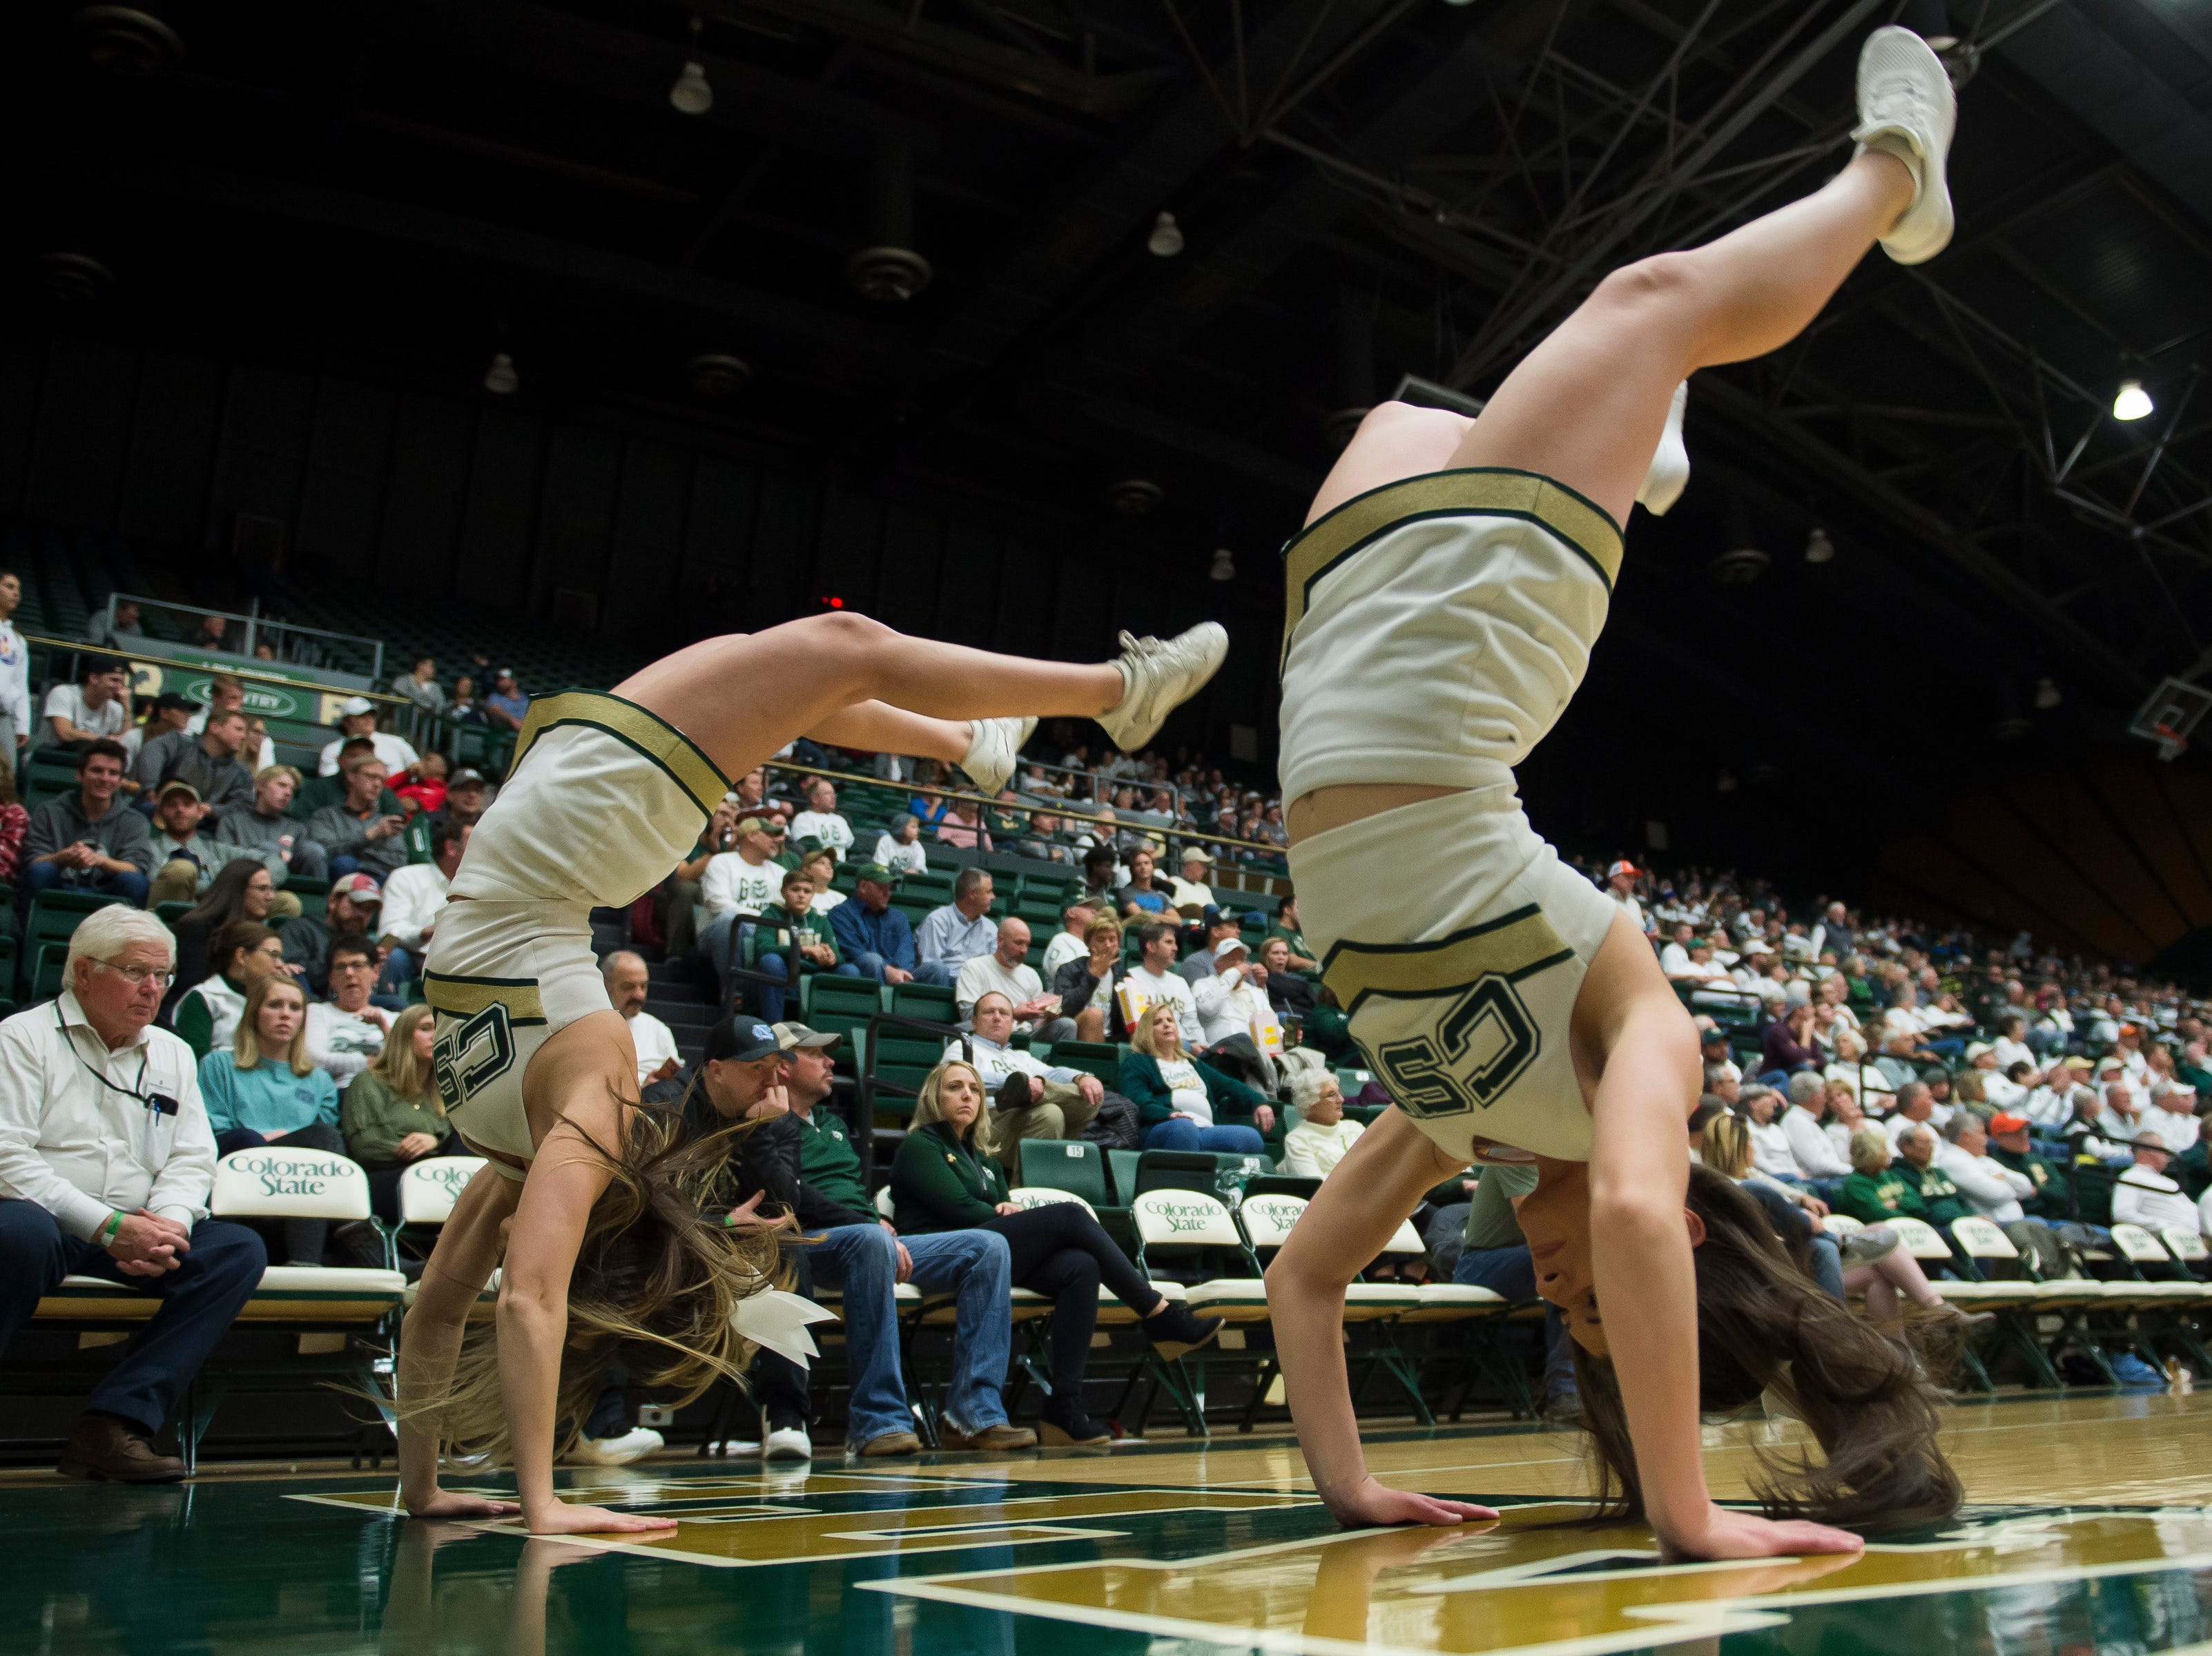 Colorado State University cheerleaders do handsprings to celebrate a free throw during a gam against Arkansas on Wednesday, Dec. 5, 2018, Moby Arena in Fort Collins, Colo.